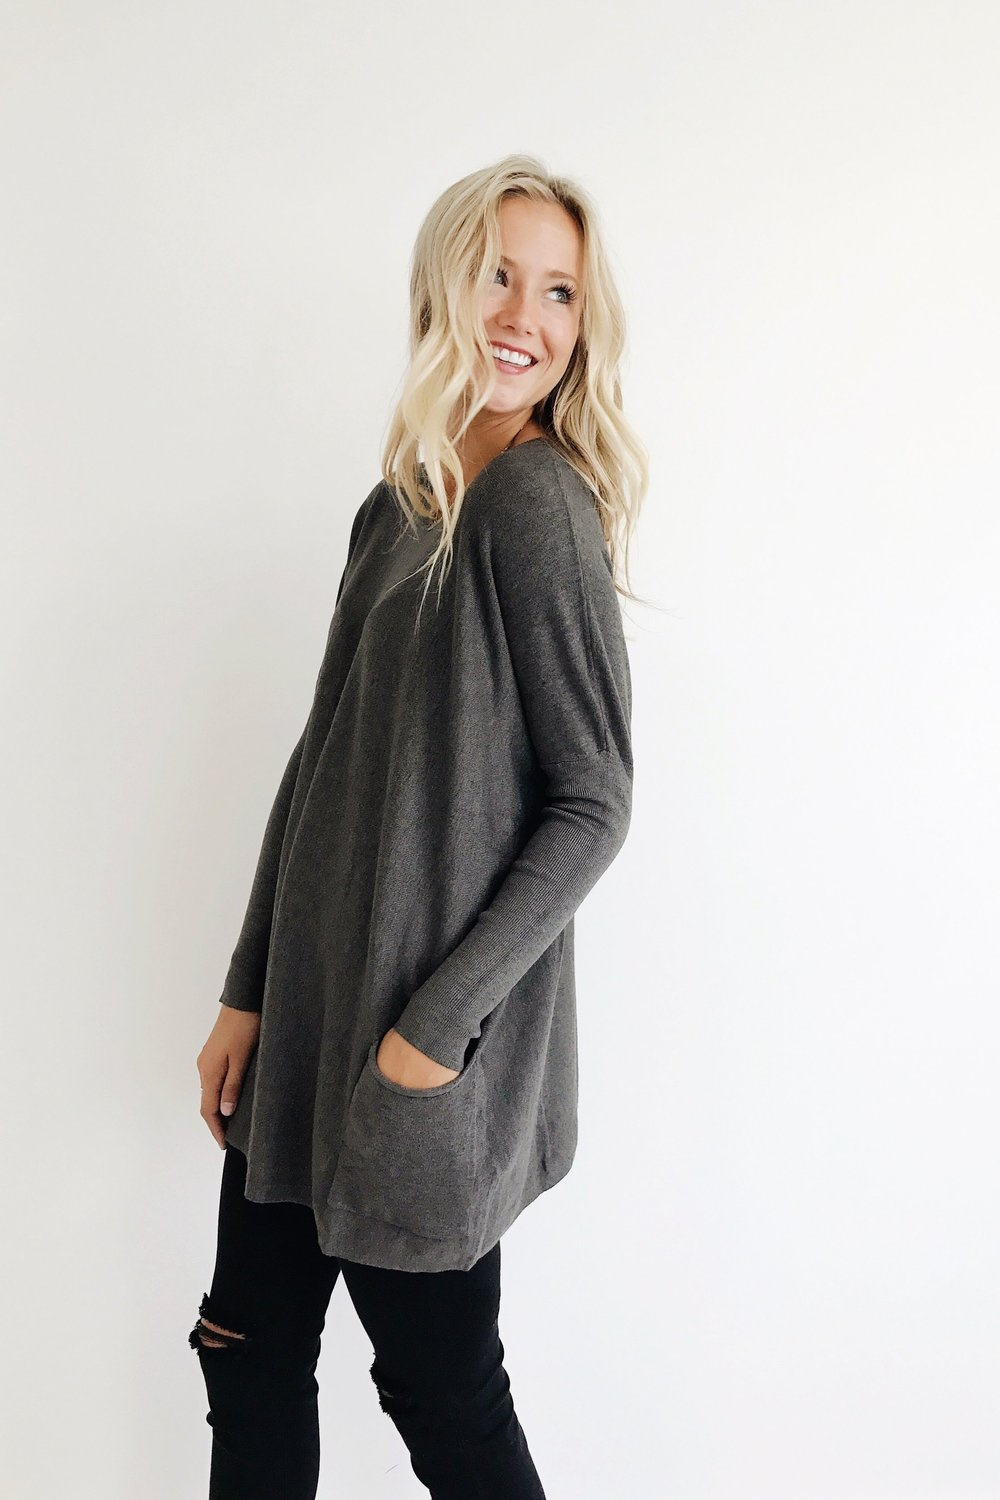 Crispen Pocket Sweater in Charcoal